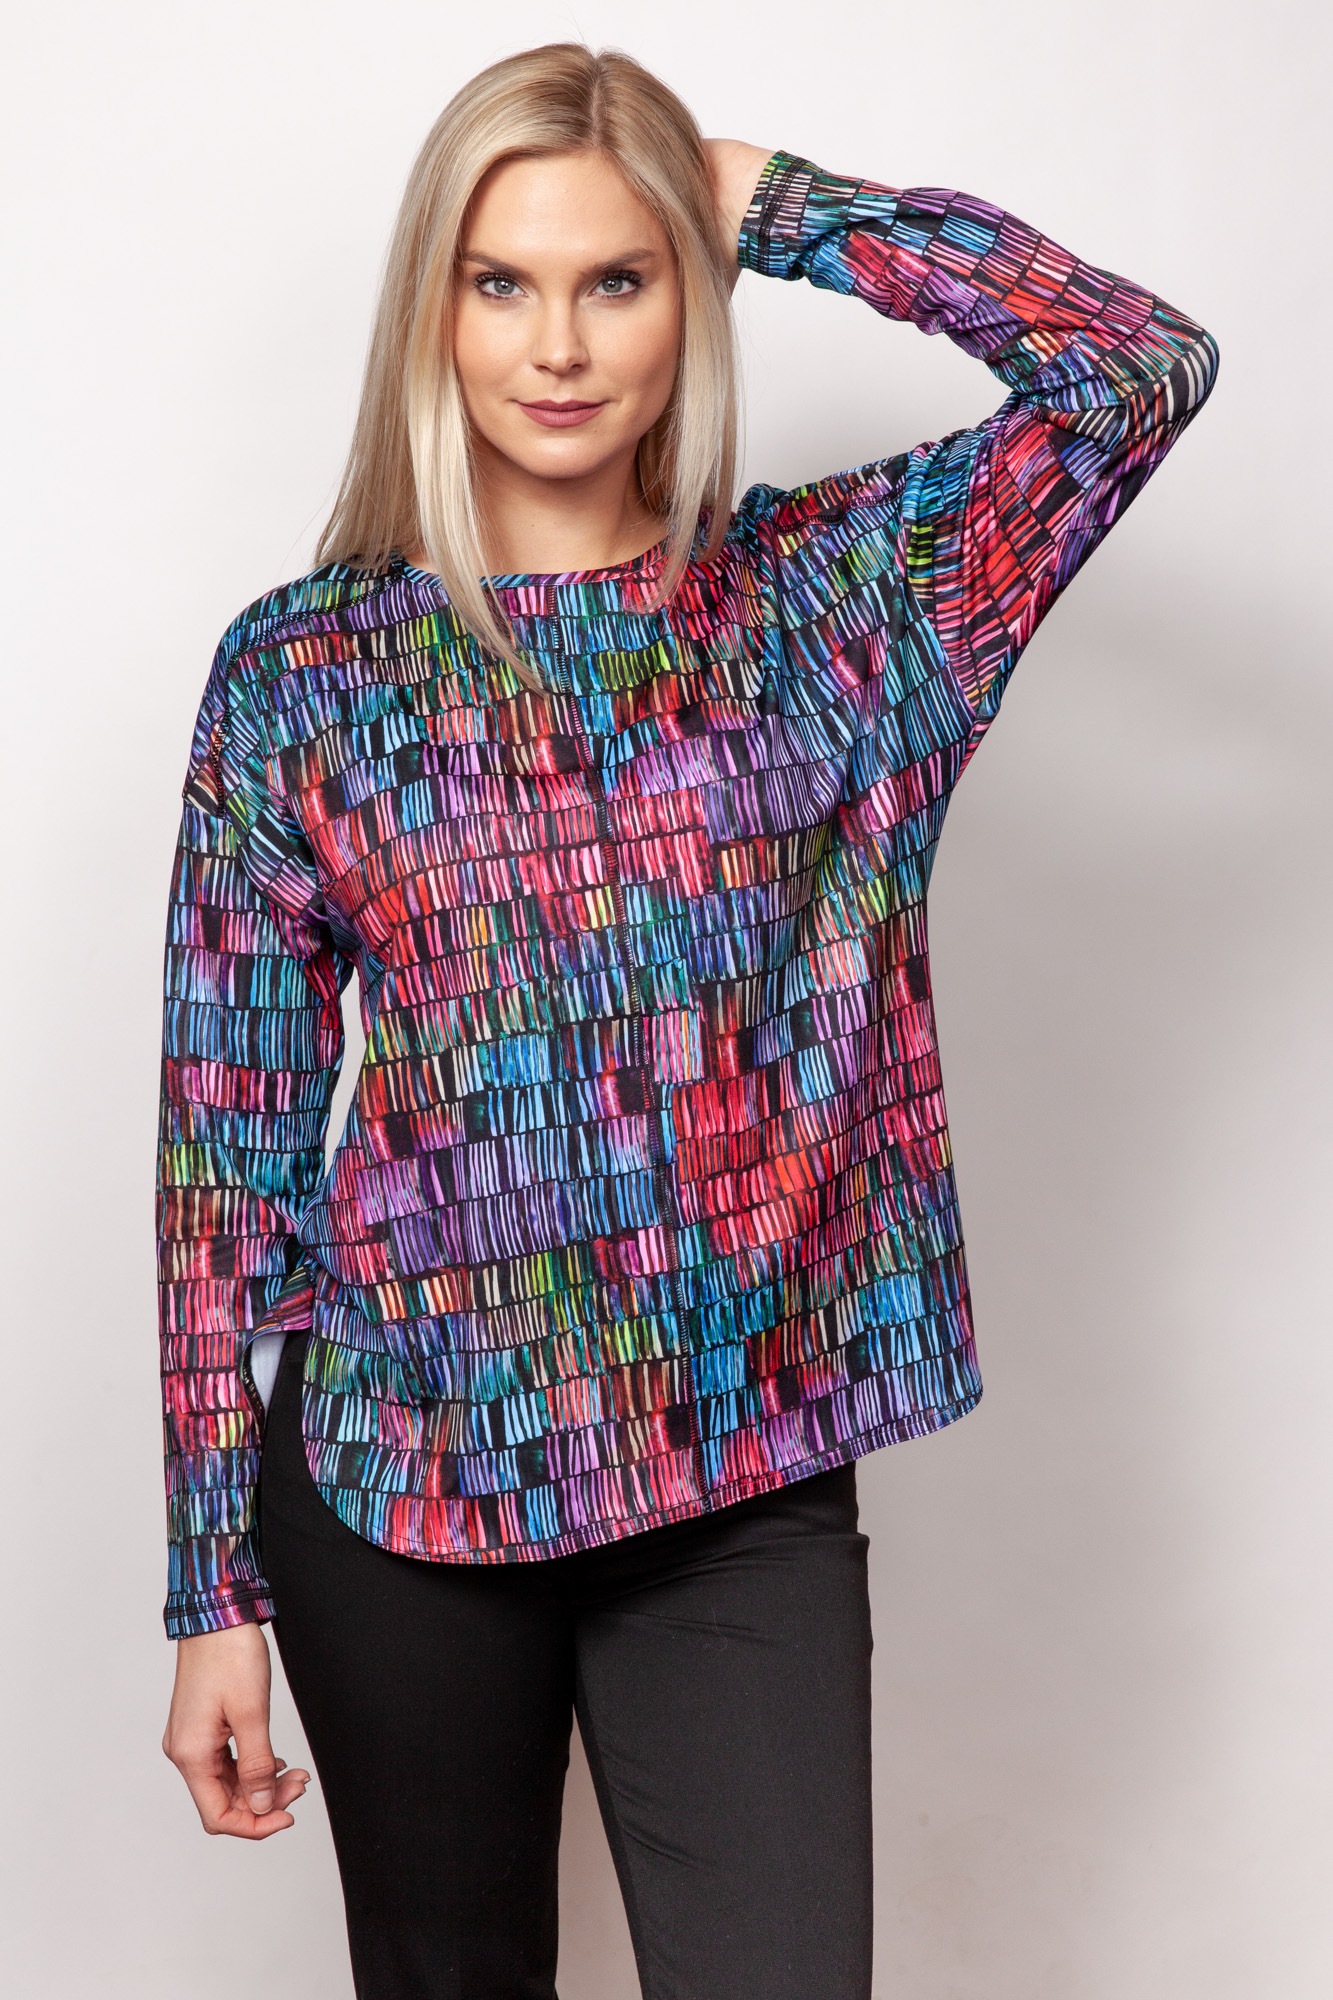 Copy of Style # 30359-19, p12 <br/>Micro Fiber Prints <br/>Patterns: Stained Glass + 11 others